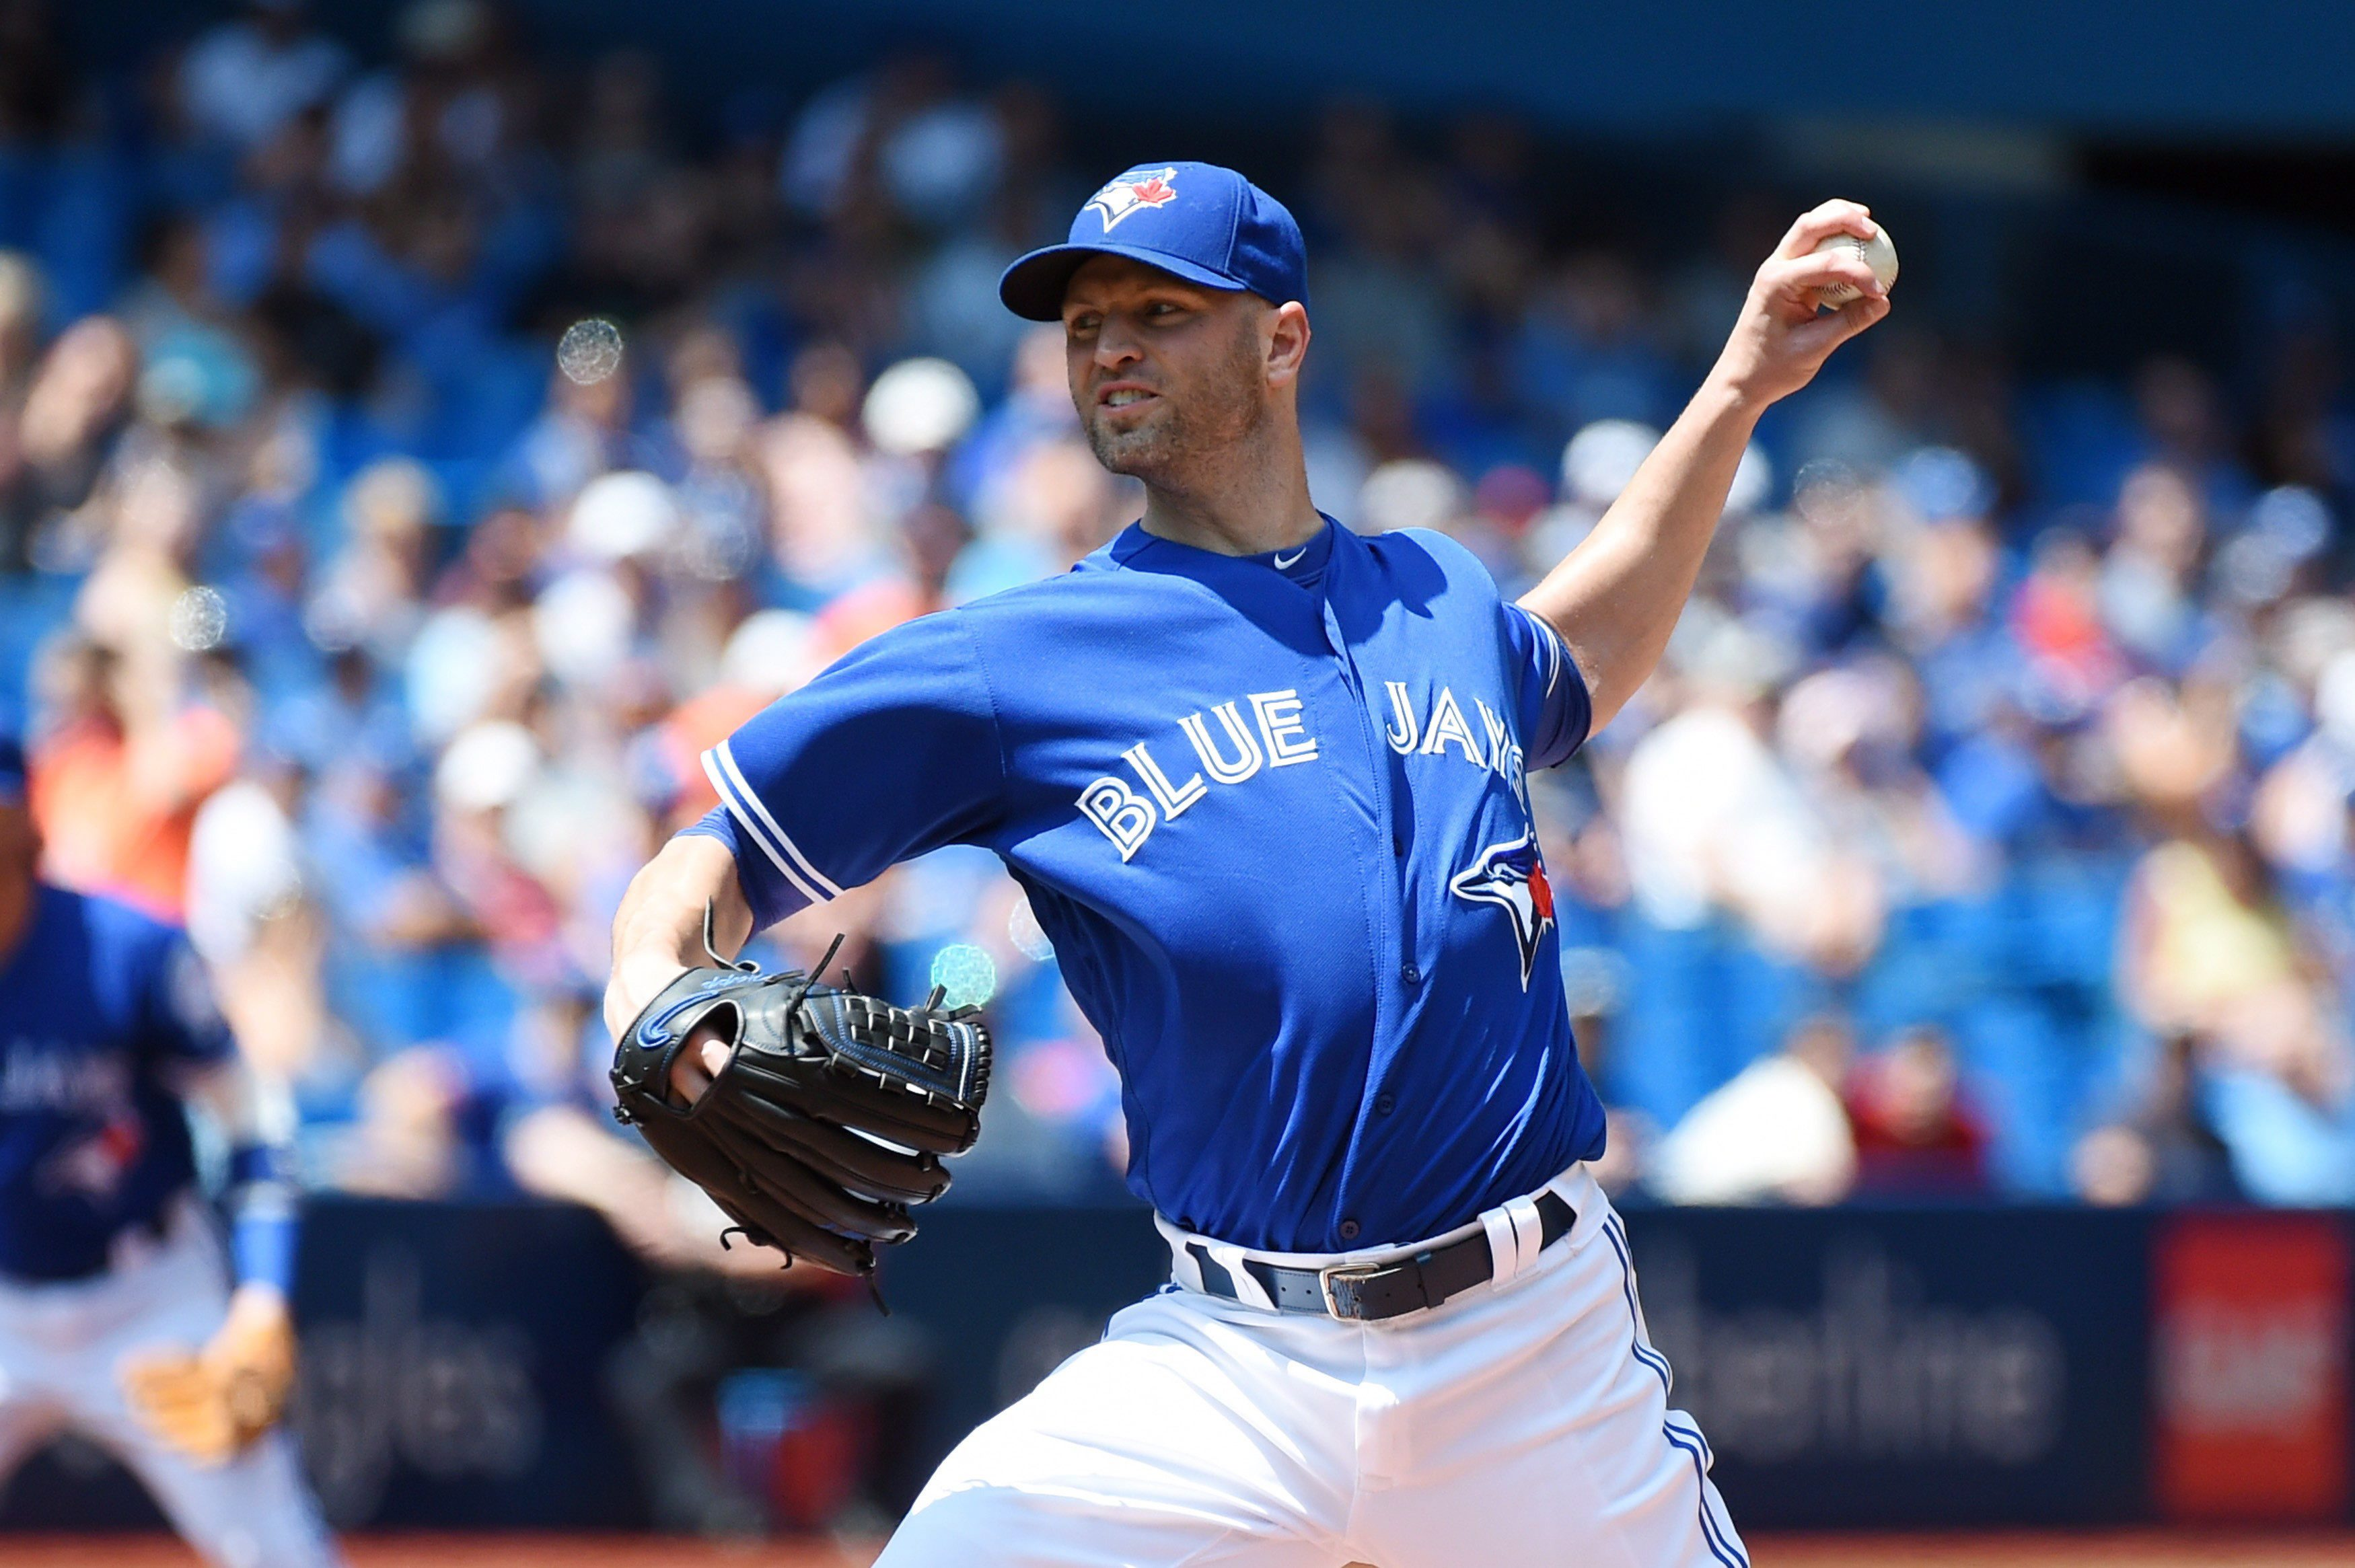 Blue Jays hands down won the J.A. Happ trade